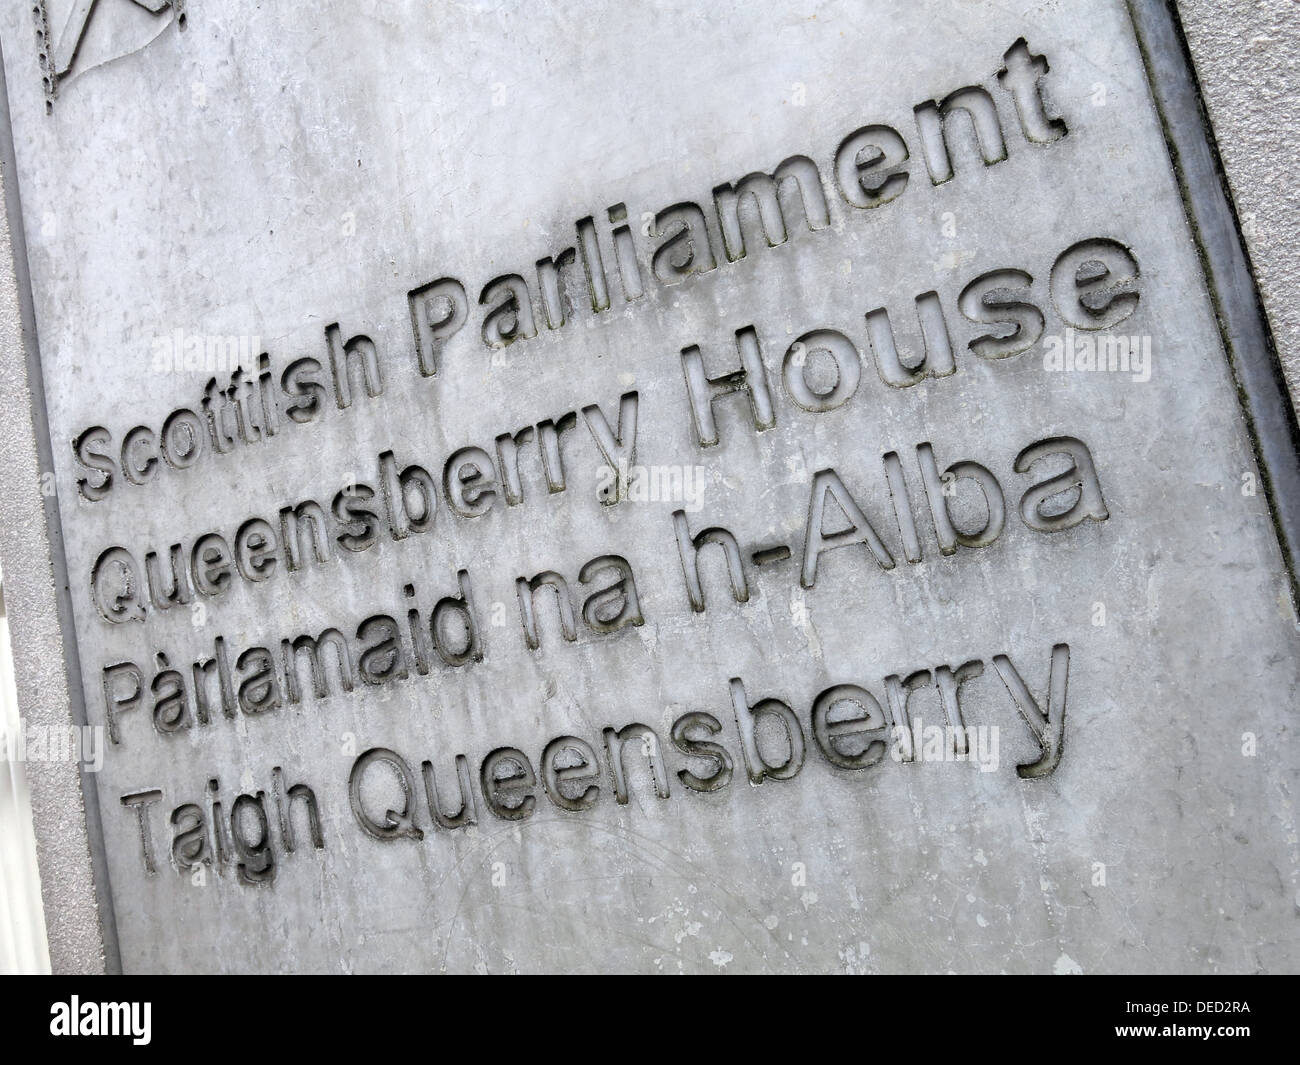 The Scottish Parliament / Government Queensberry House in Edinburgh which would be home of an independent Scotland - Stock Image